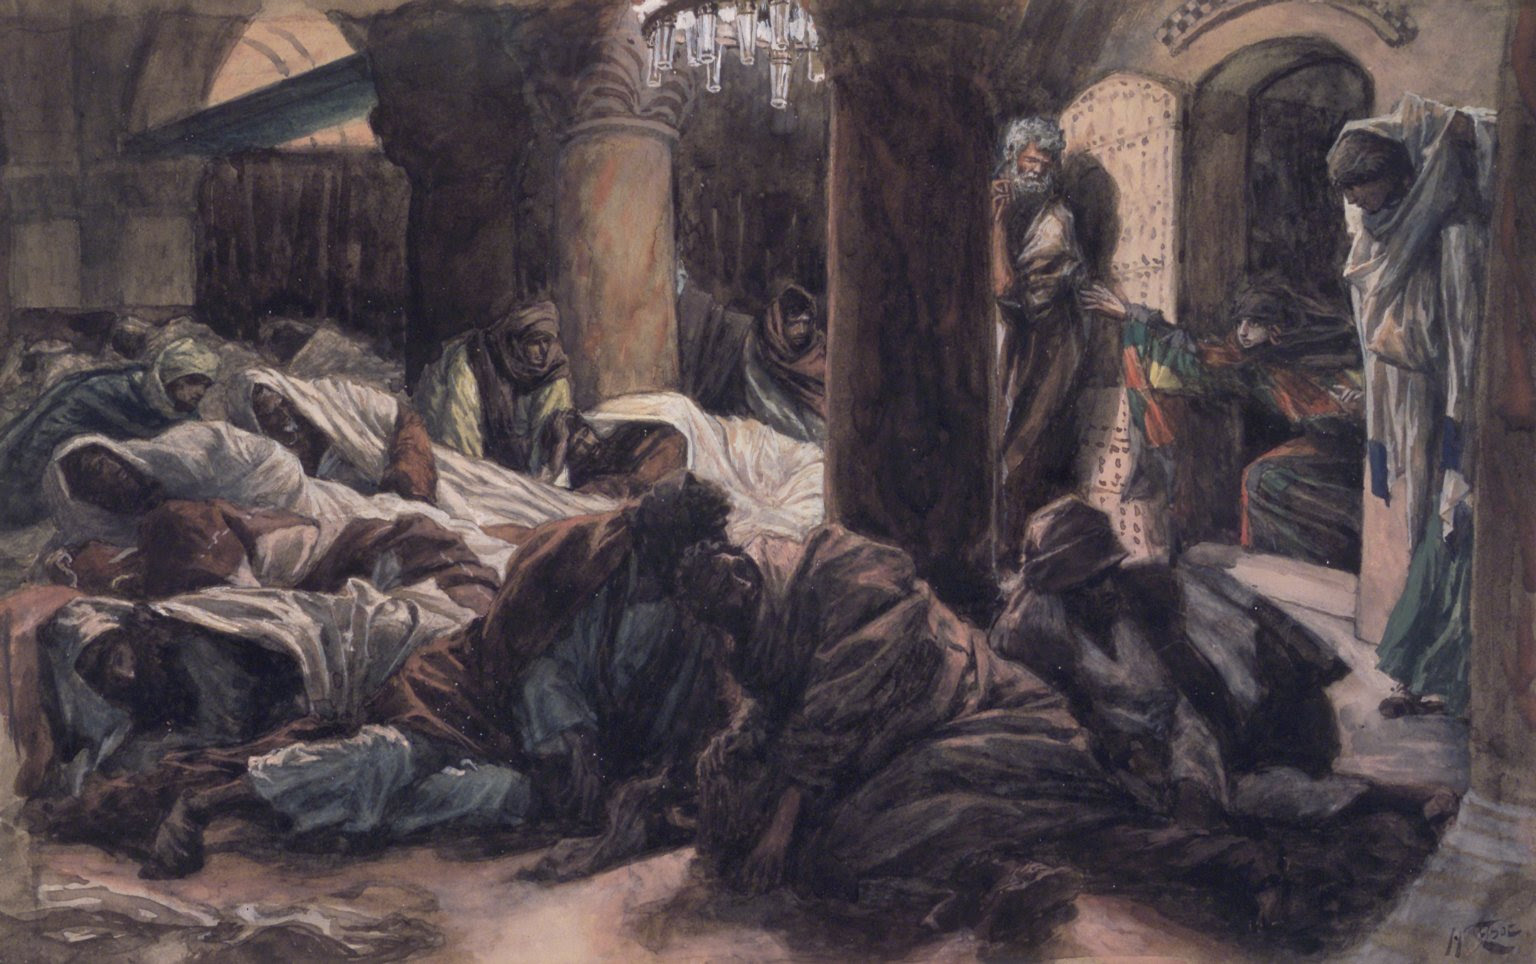 Mary Magdalene bursts into the room where Jesus' disciples are sleeping